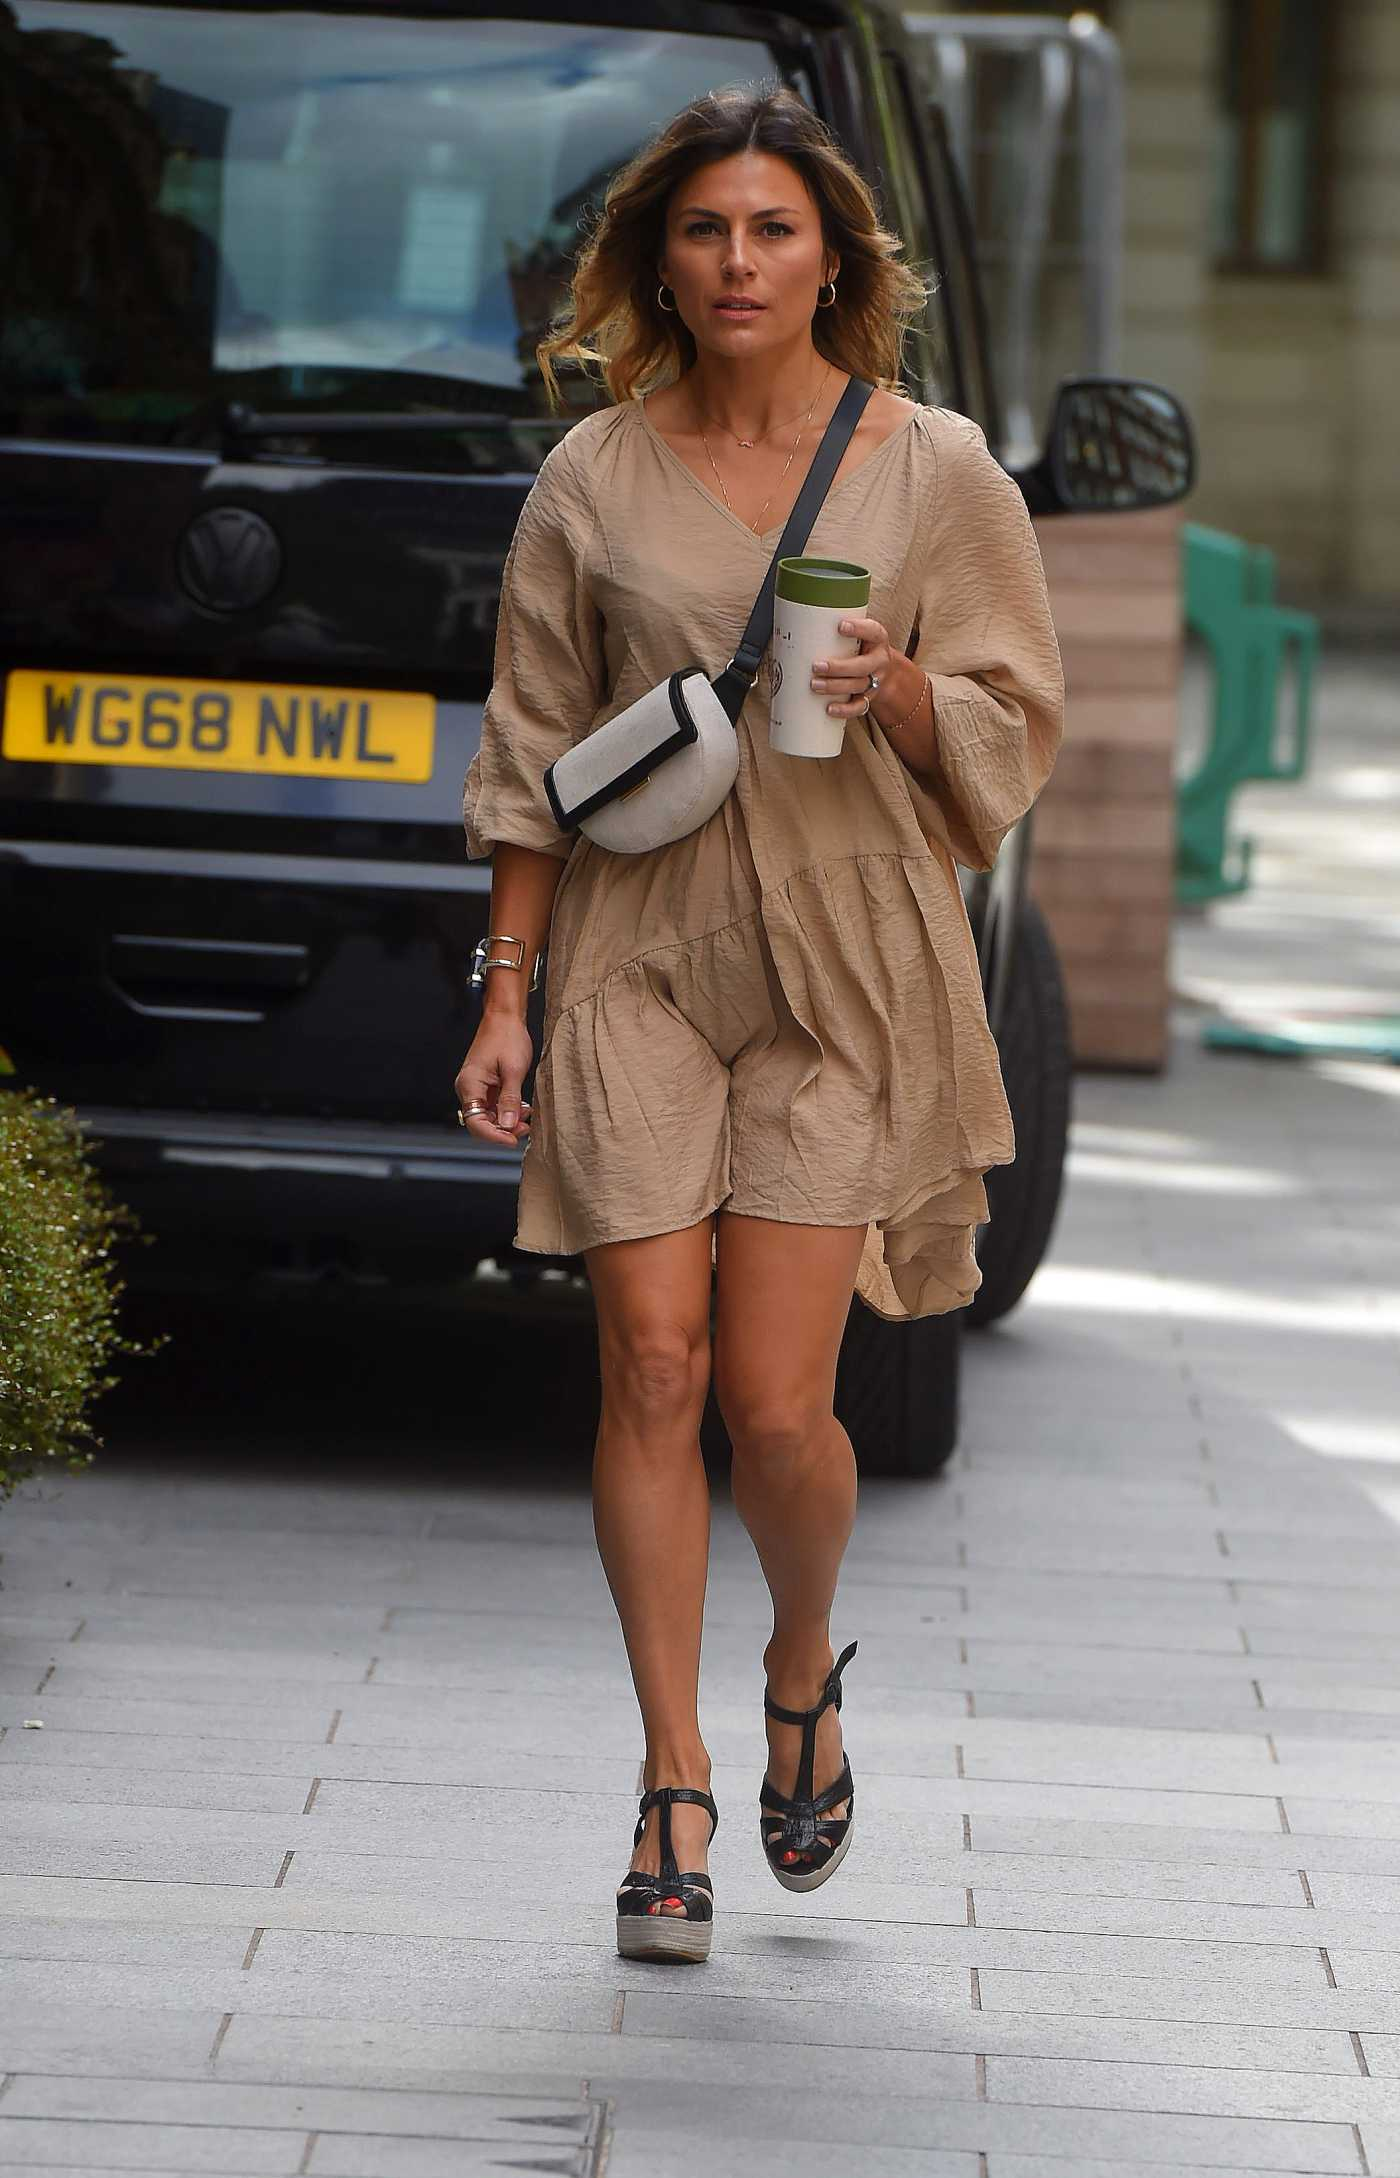 Zoe Hardman in a Beige Dress Arrives at Global Radio Studios in London 06/28/2020